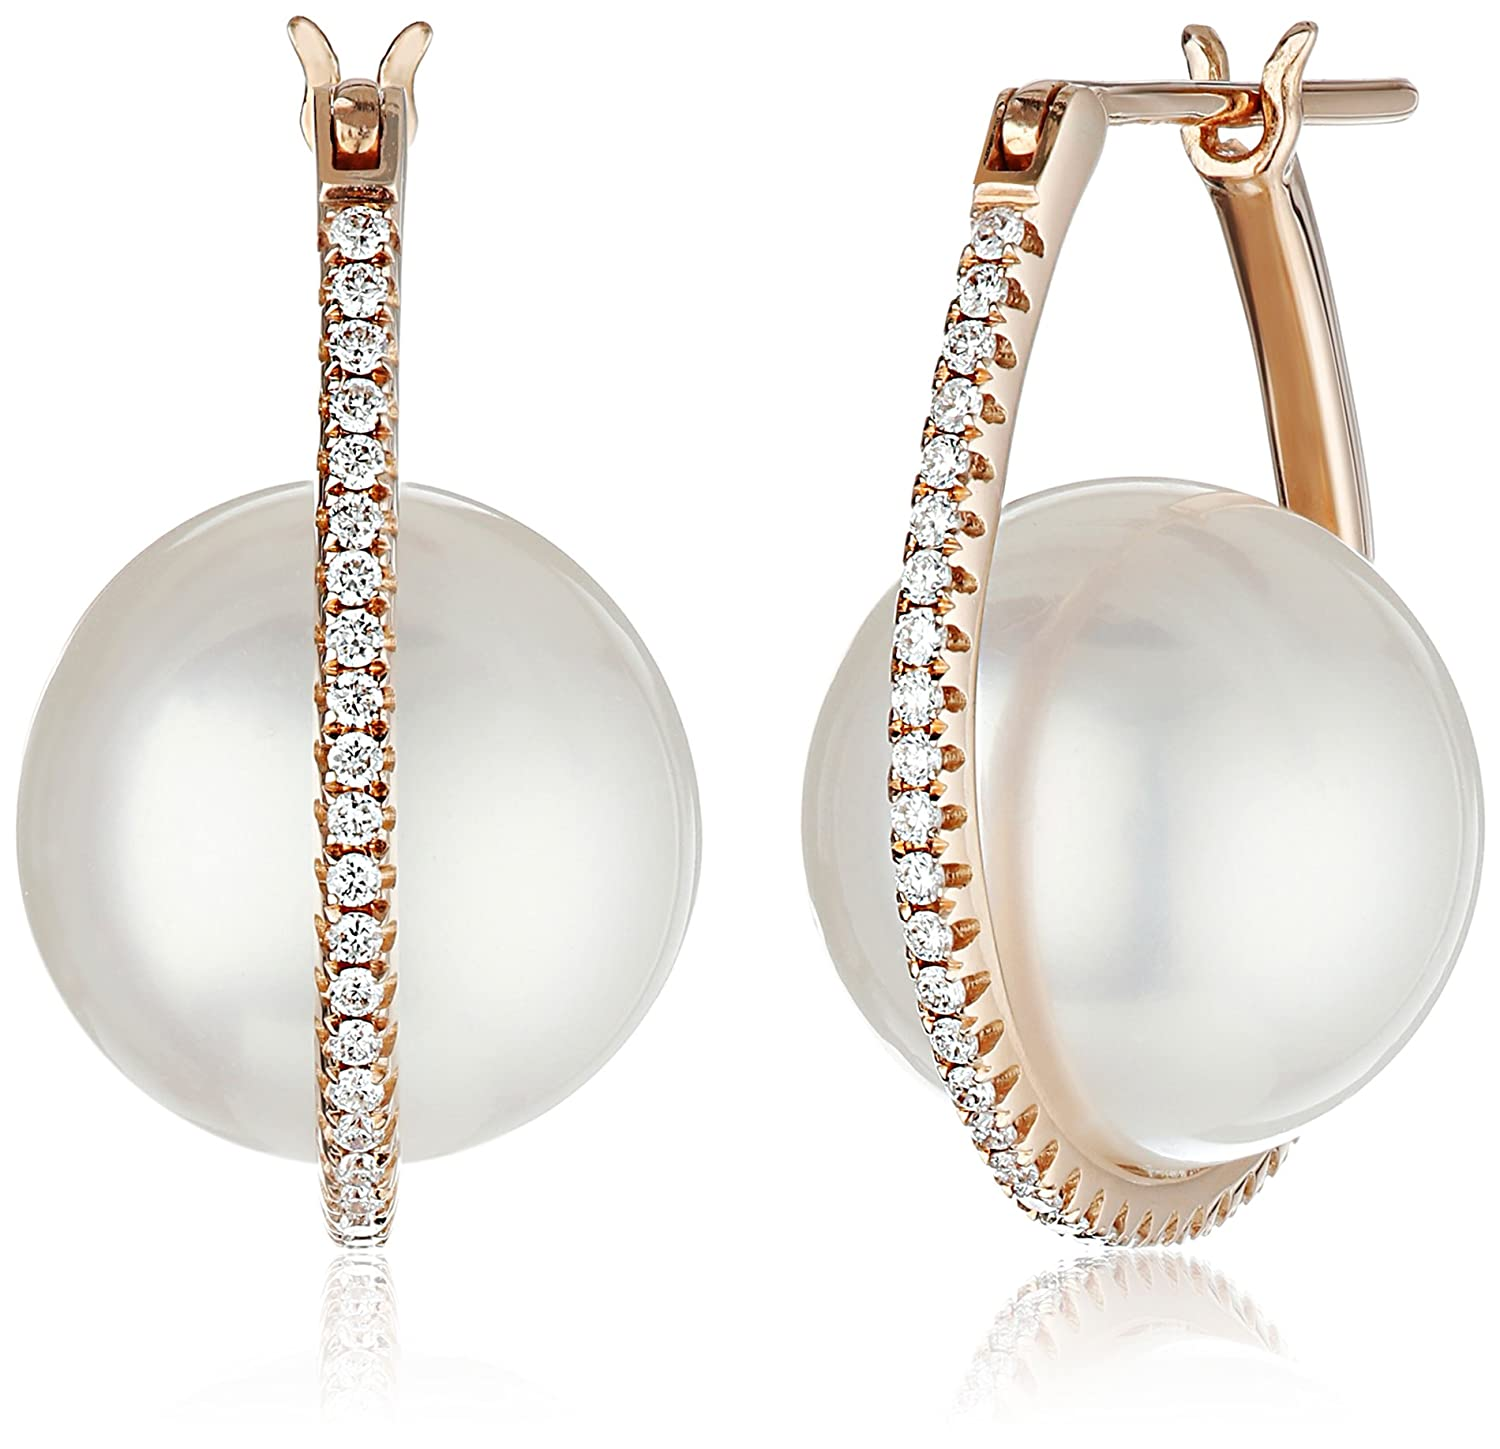 delfina kultia pearl delettrez earrings diamond with single star and earring